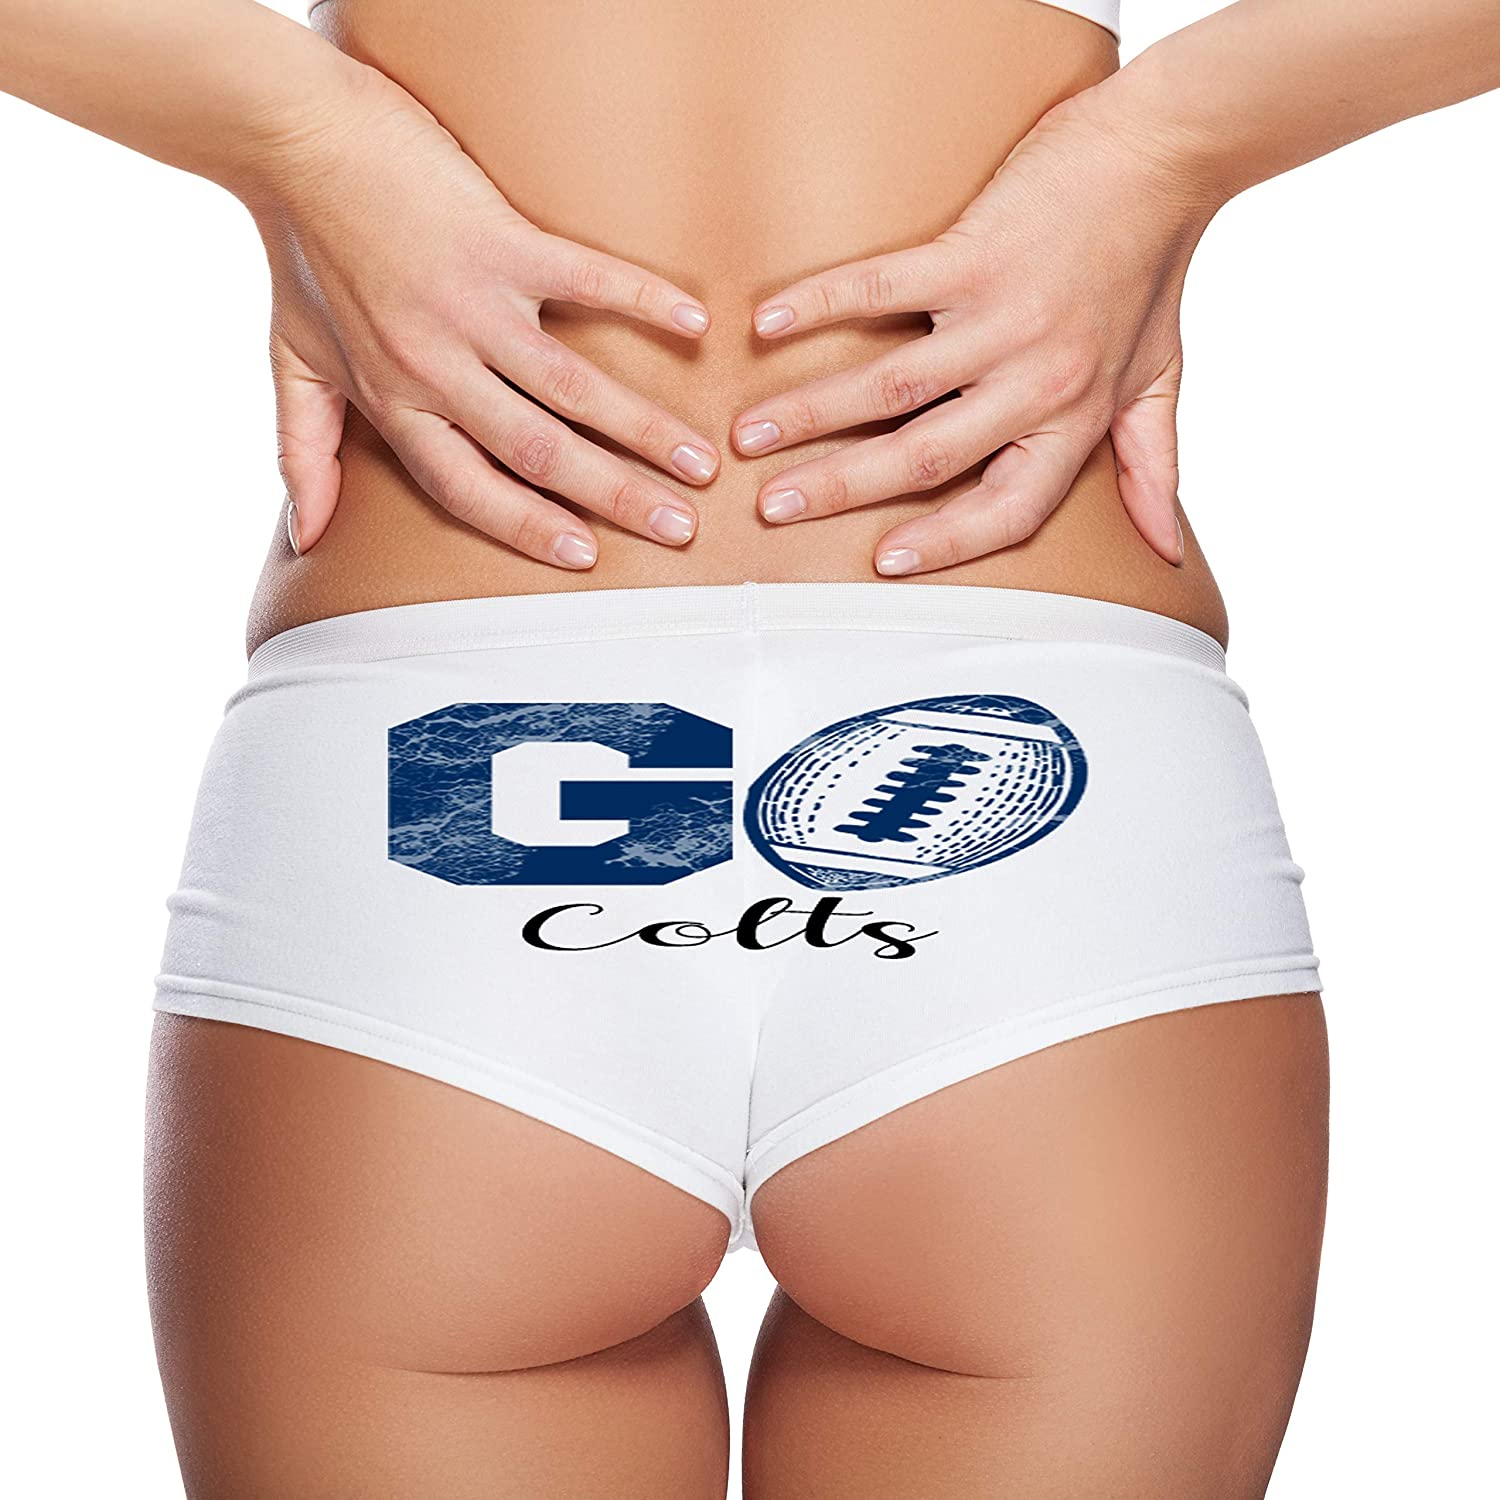 Go Colts Football Booty Shorts